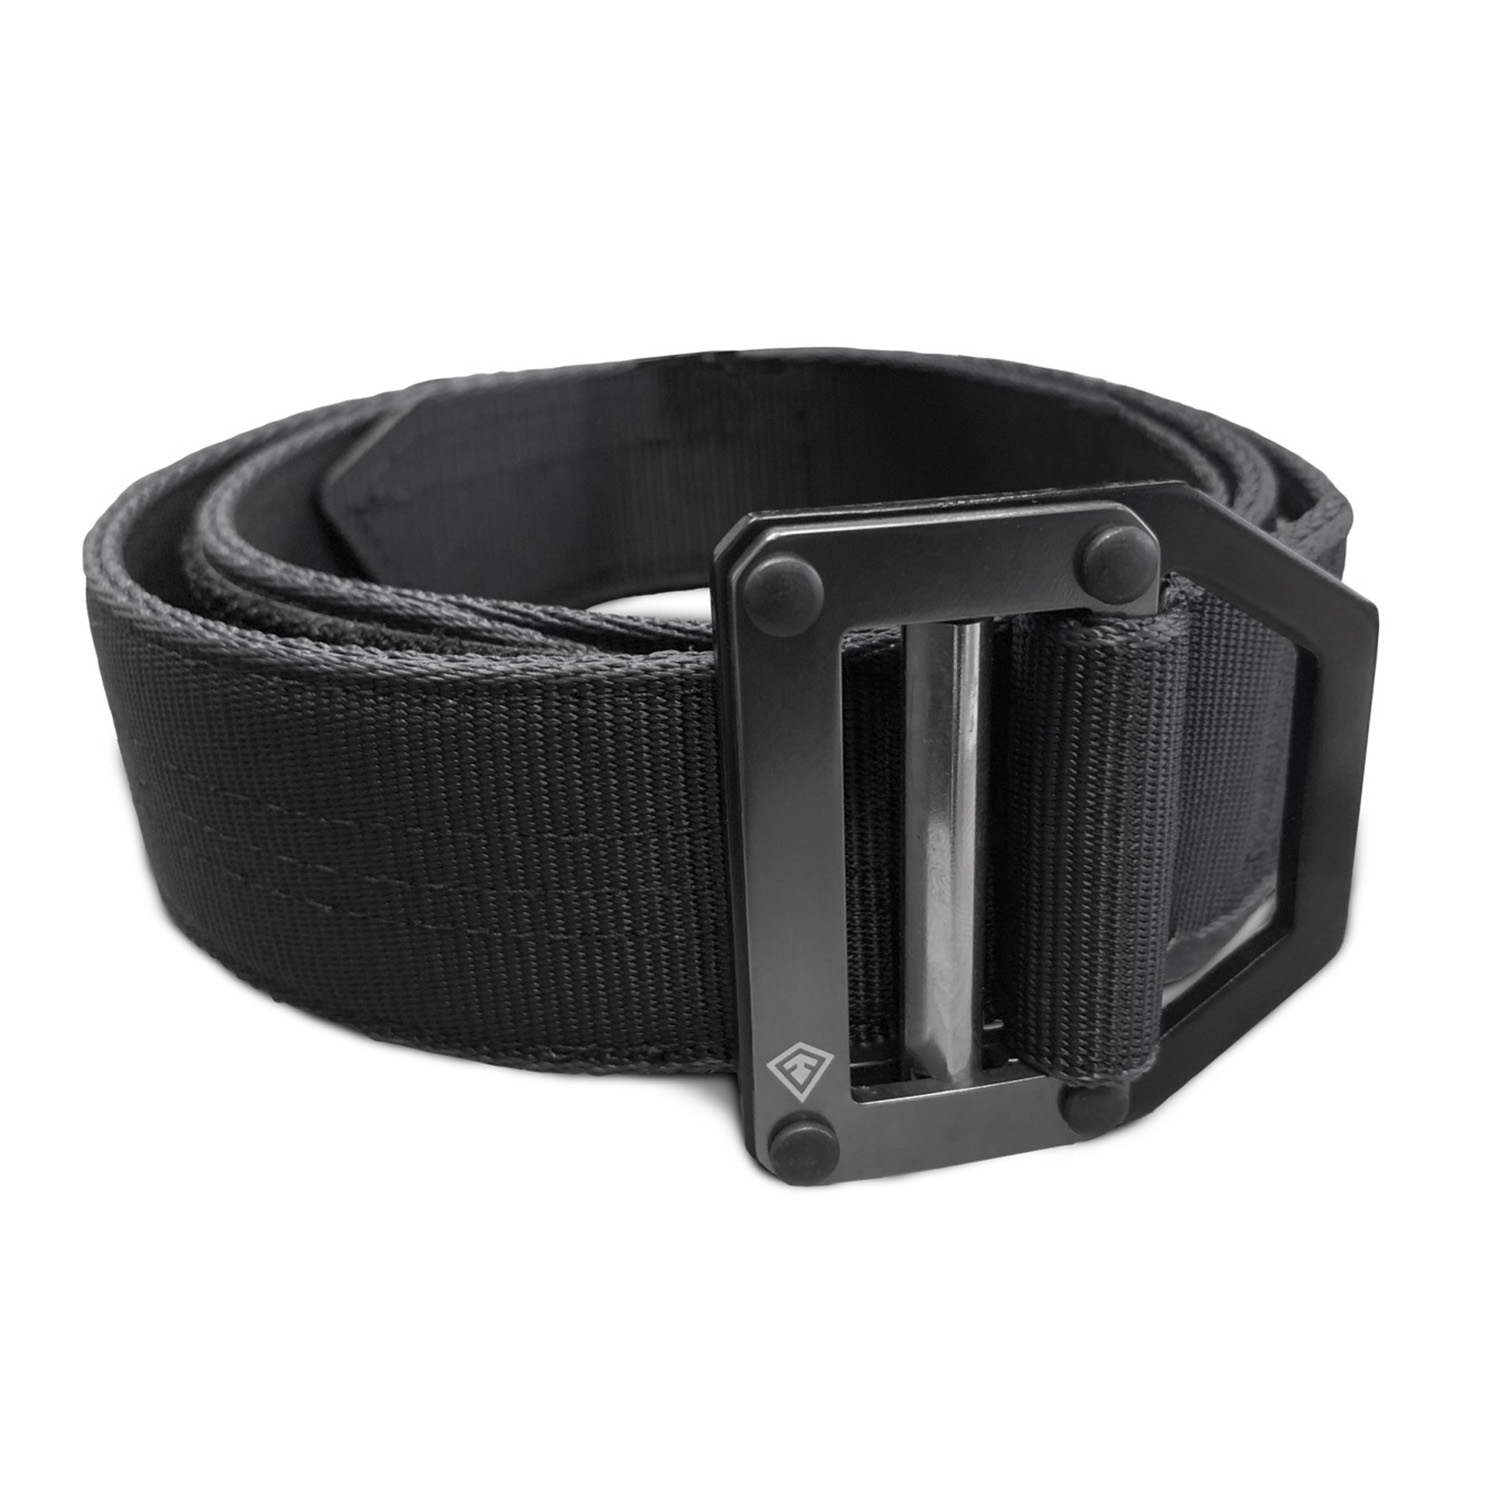 "First Tactical 1.75"" Tactical Belt"